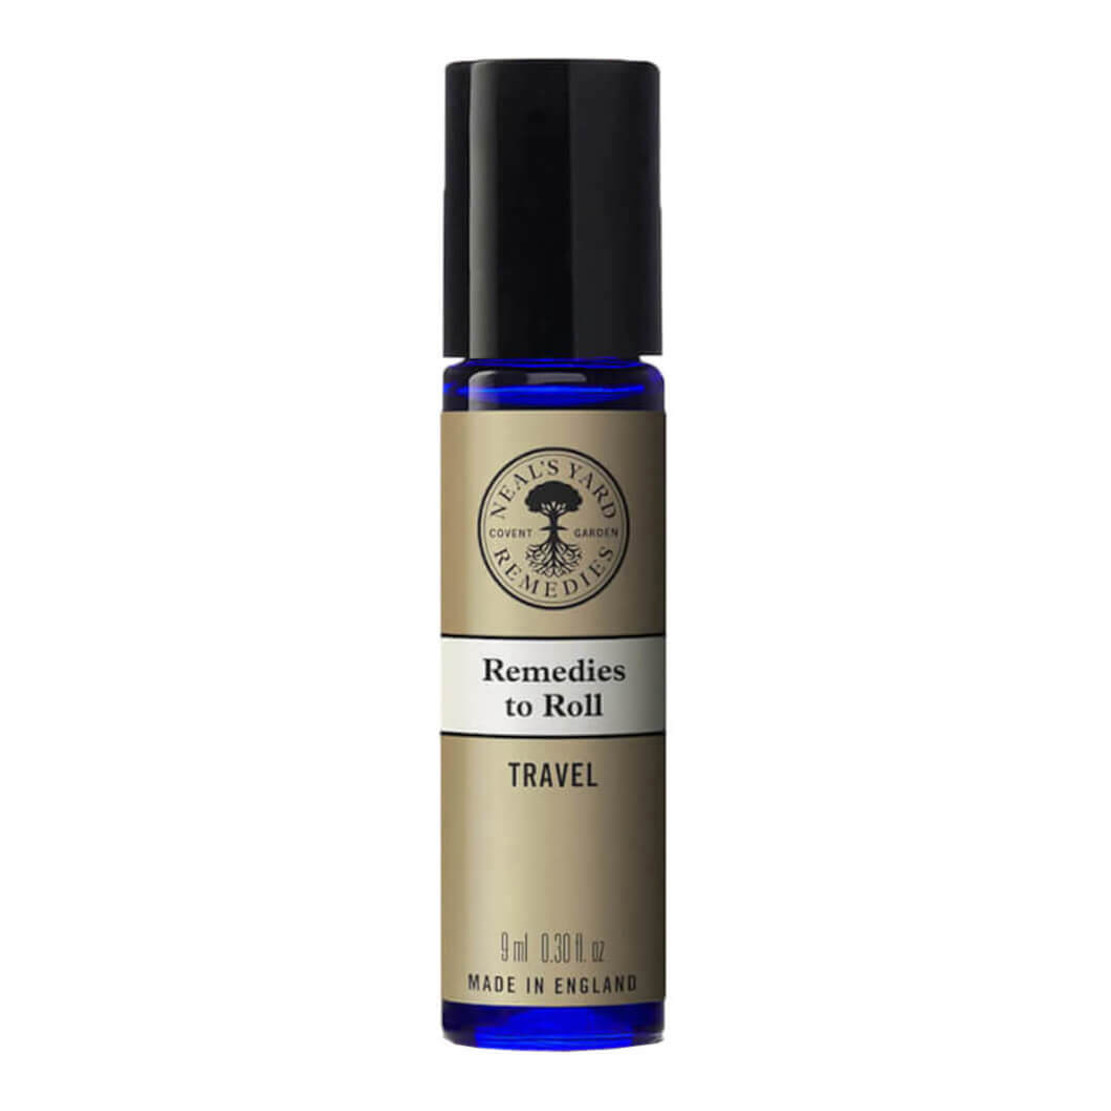 Neal's Yard Remedies Remedies to Roll for Travel 9ml